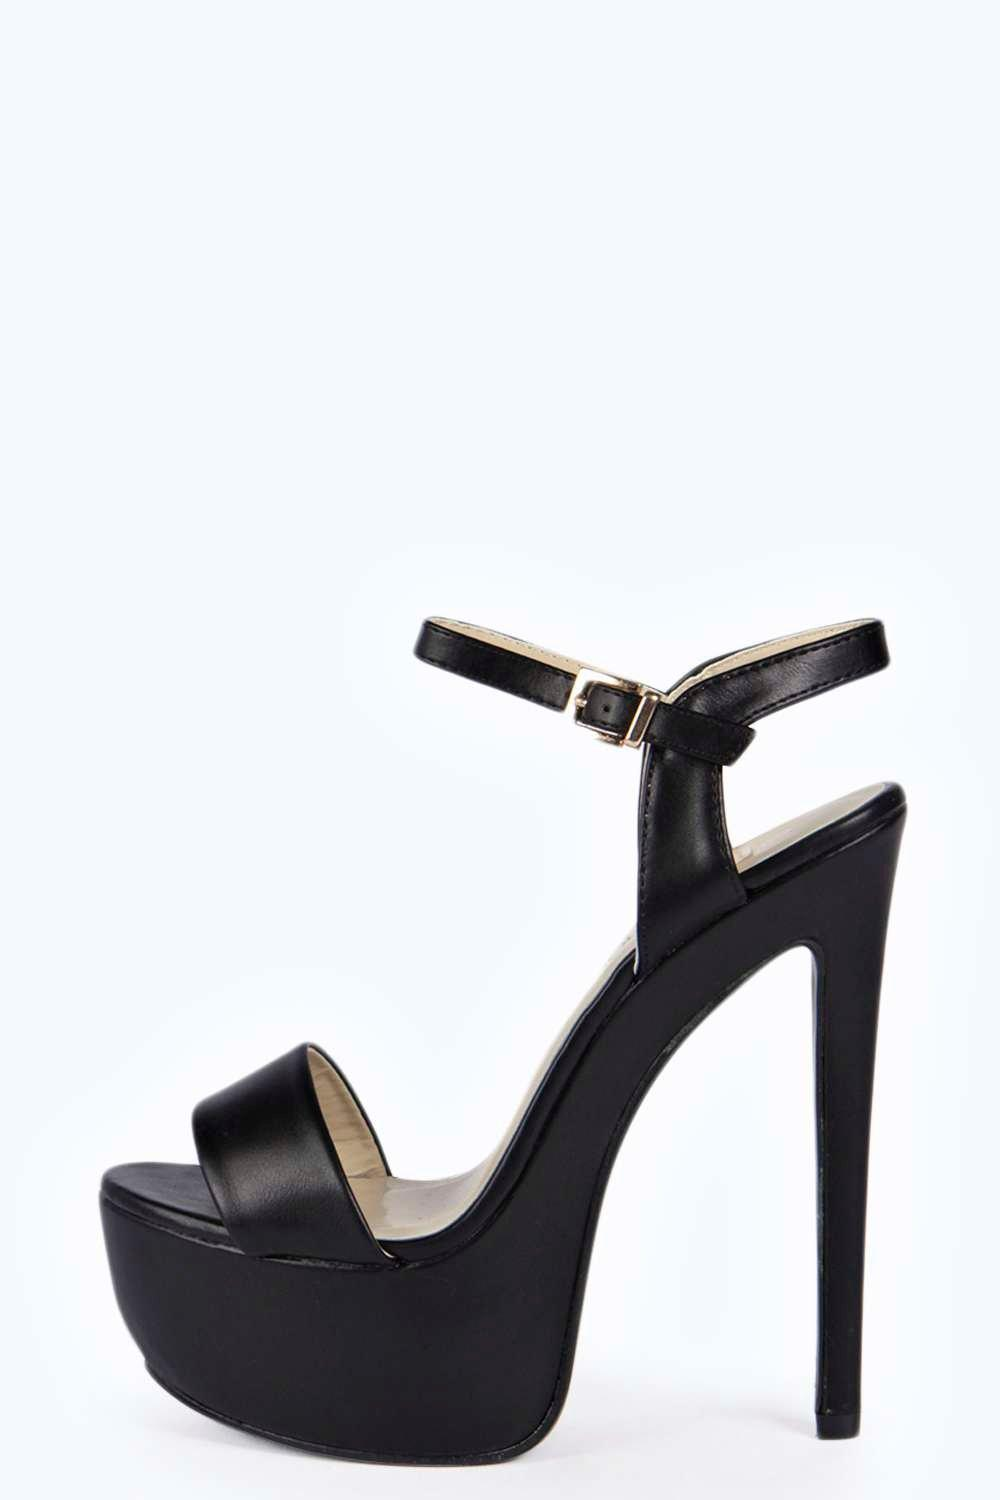 Black Platform Heels With Ankle Strap